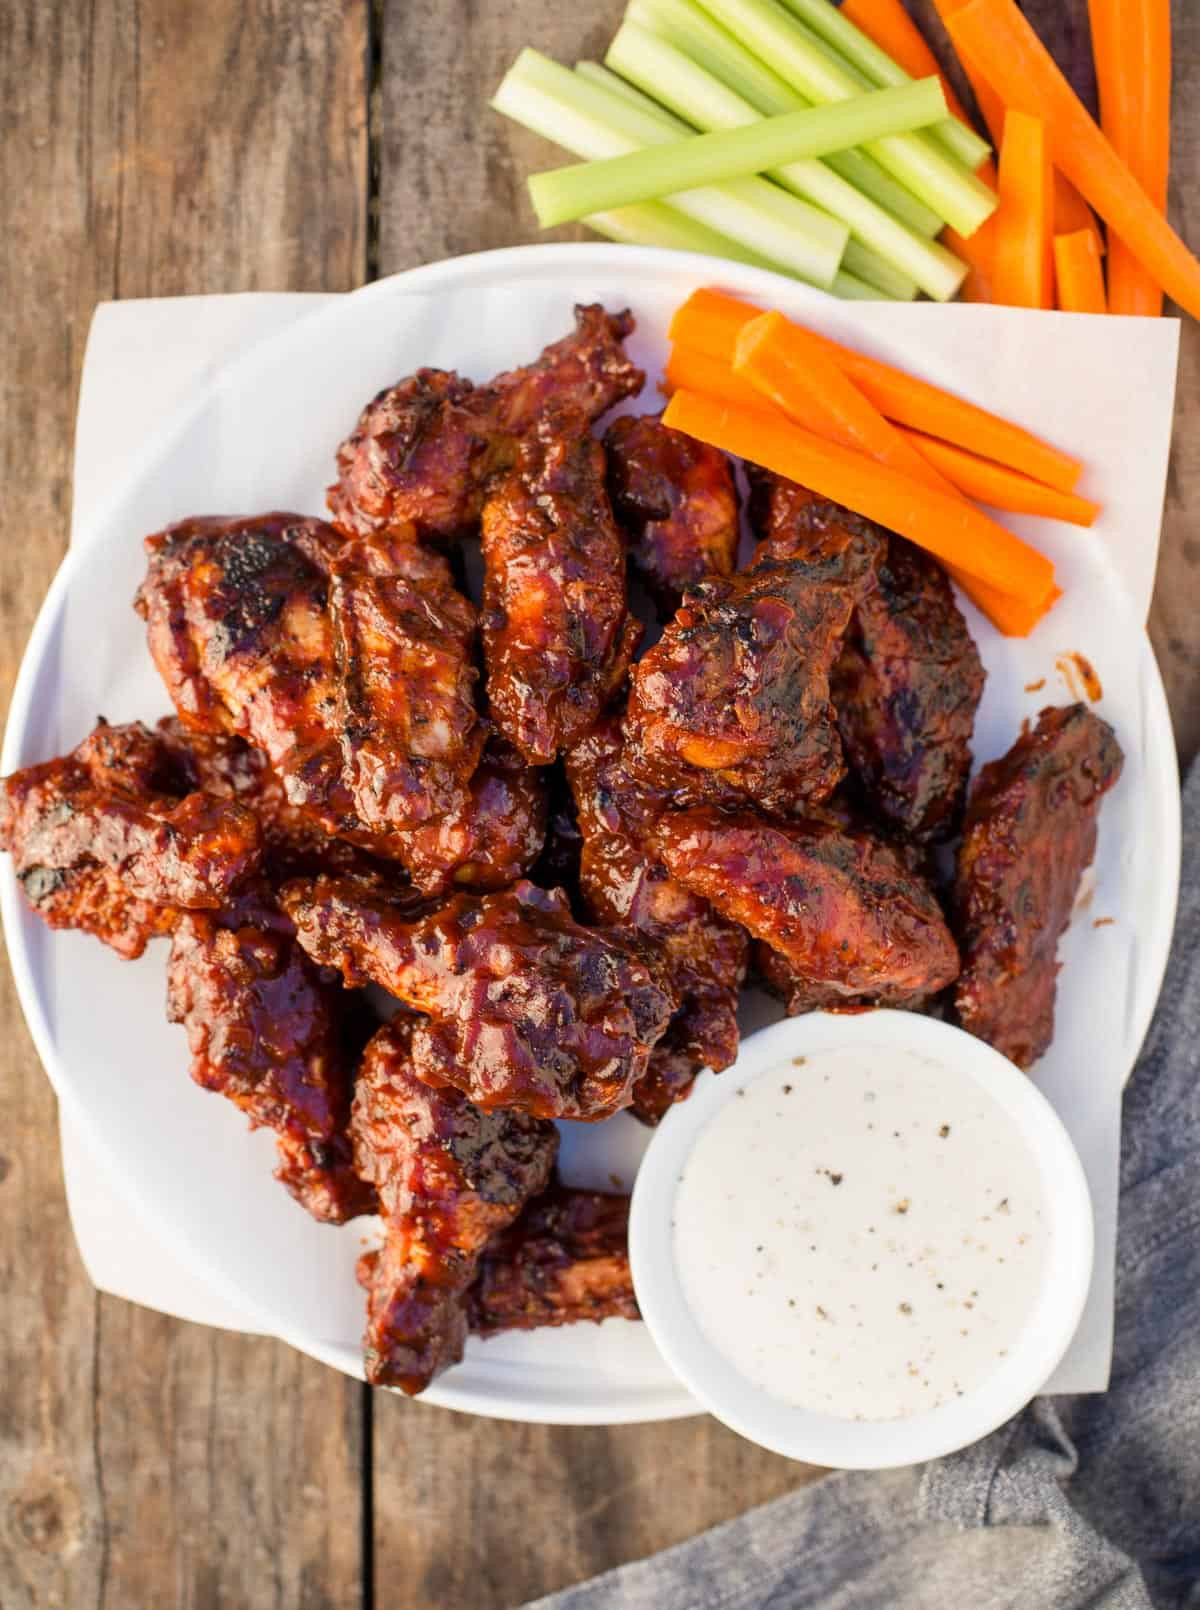 Grilled Chicken Wings with Crispy Skin on a white platter